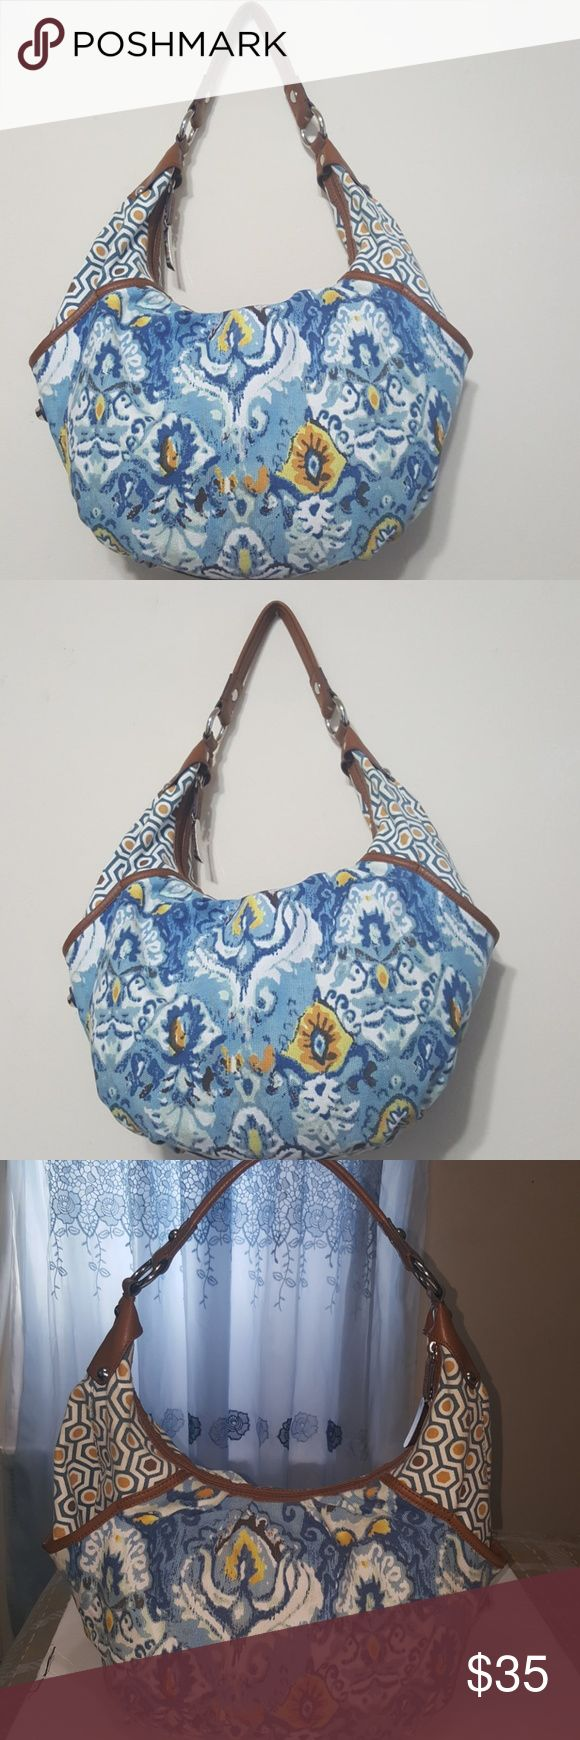 🎀Tignanello🎀 womens hobo bag Beautiful flowers print   Tignanello Handbag  with brown  leather straps is in great condition inside and out. Tignanello Bags Shoulder Bags